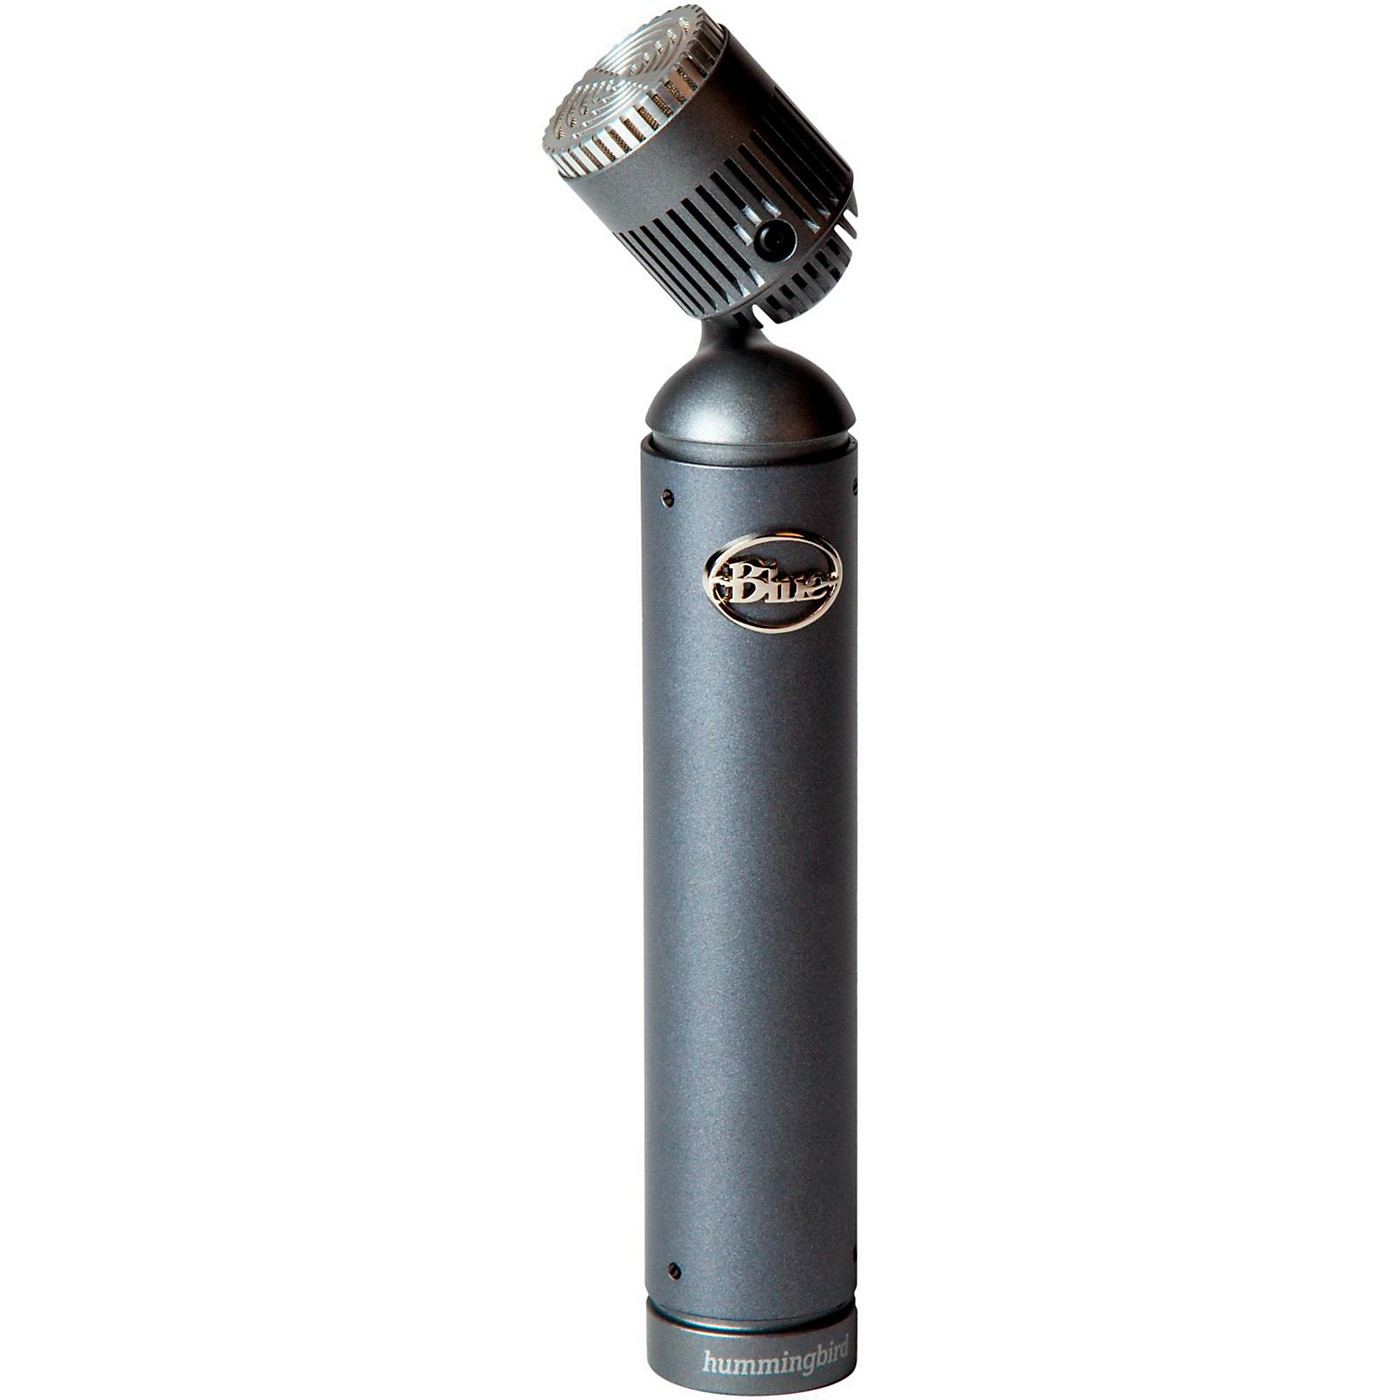 BLUE Hummingbird Condenser Mic with Pivoting Head thumbnail